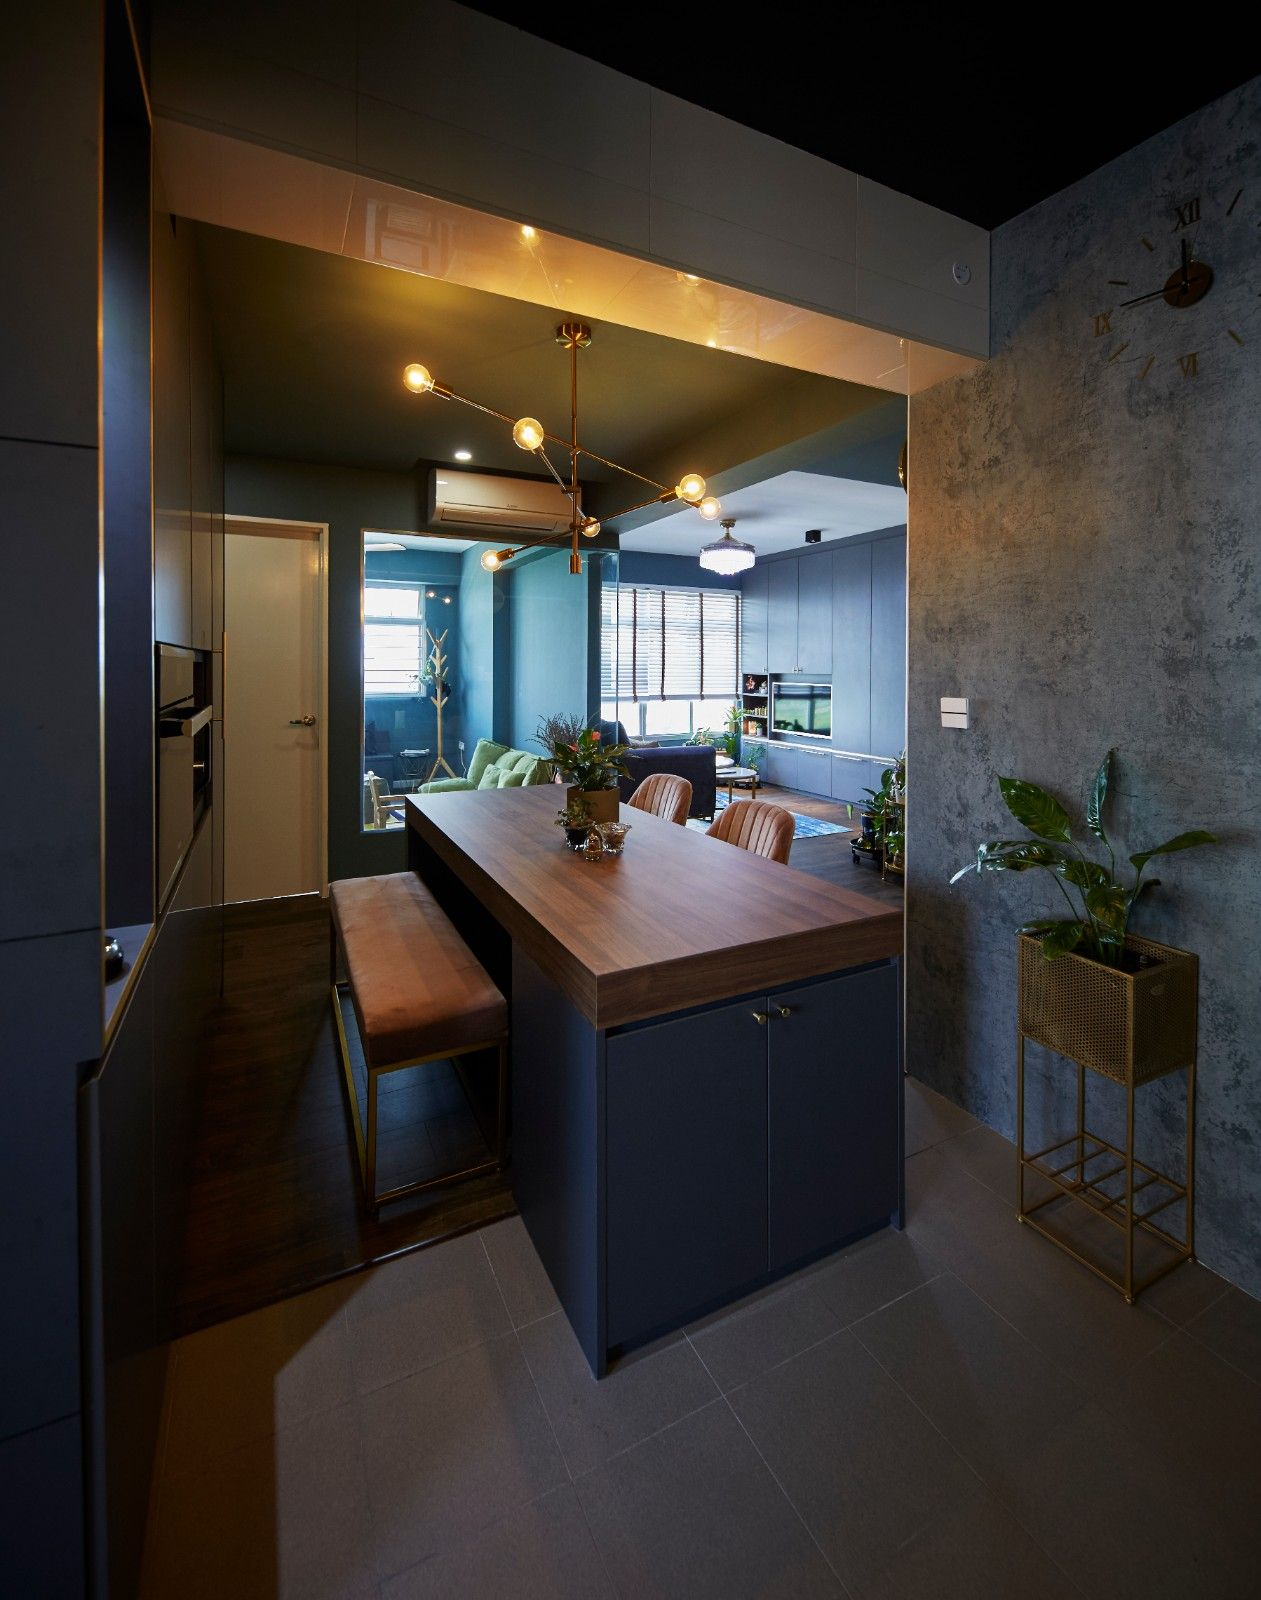 Hdb Bto Anchorvale Rustic Eclectic Theme 4 Room Bto Carpenters